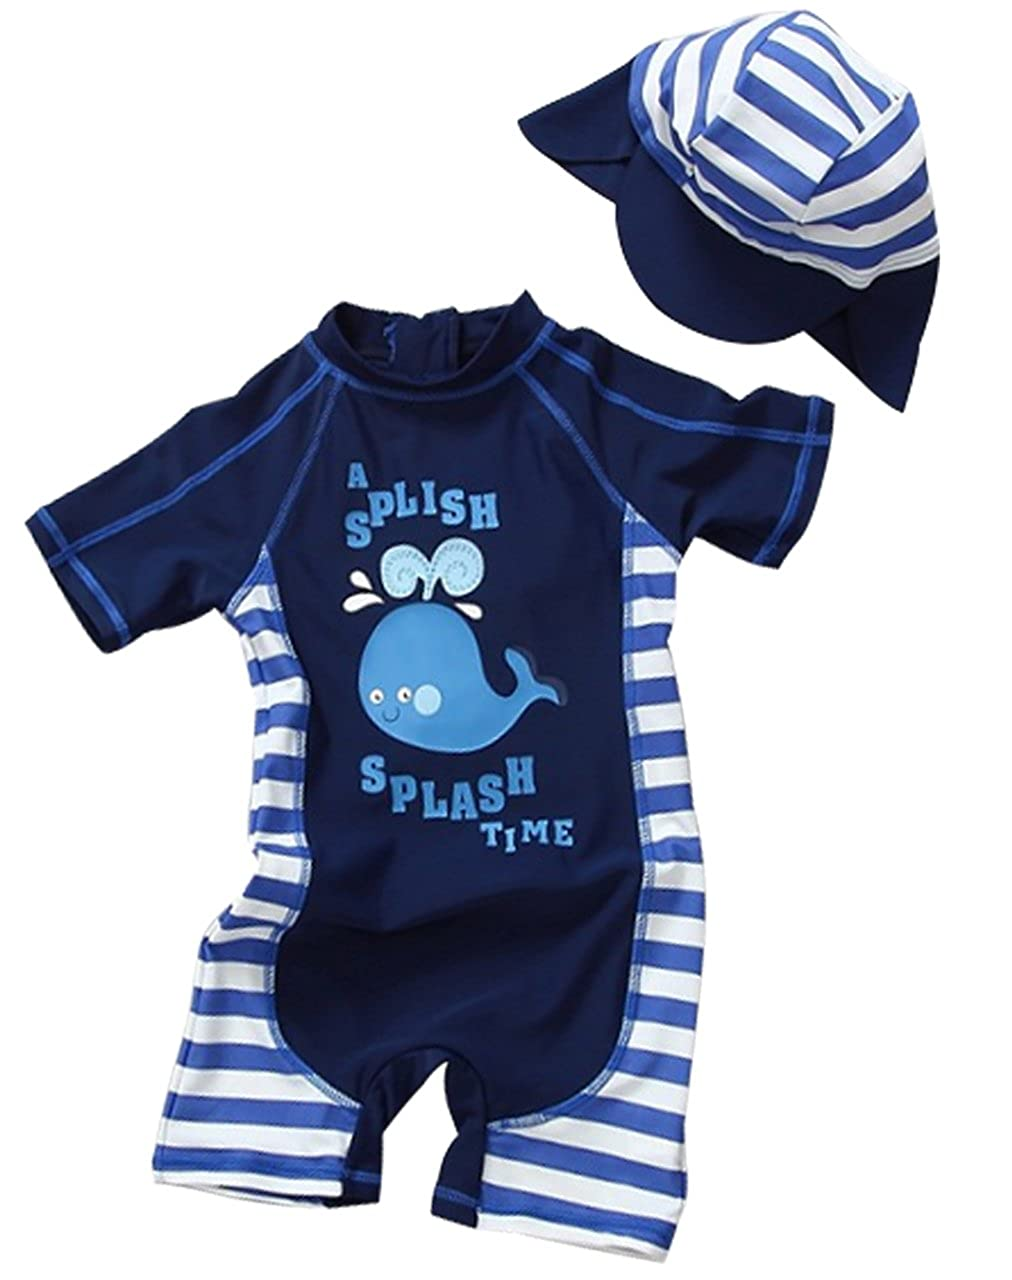 DUTUT Infant Baby Boy Long Sleeve One Piece Rash Guard Swimsuit UV Sun Protection H138